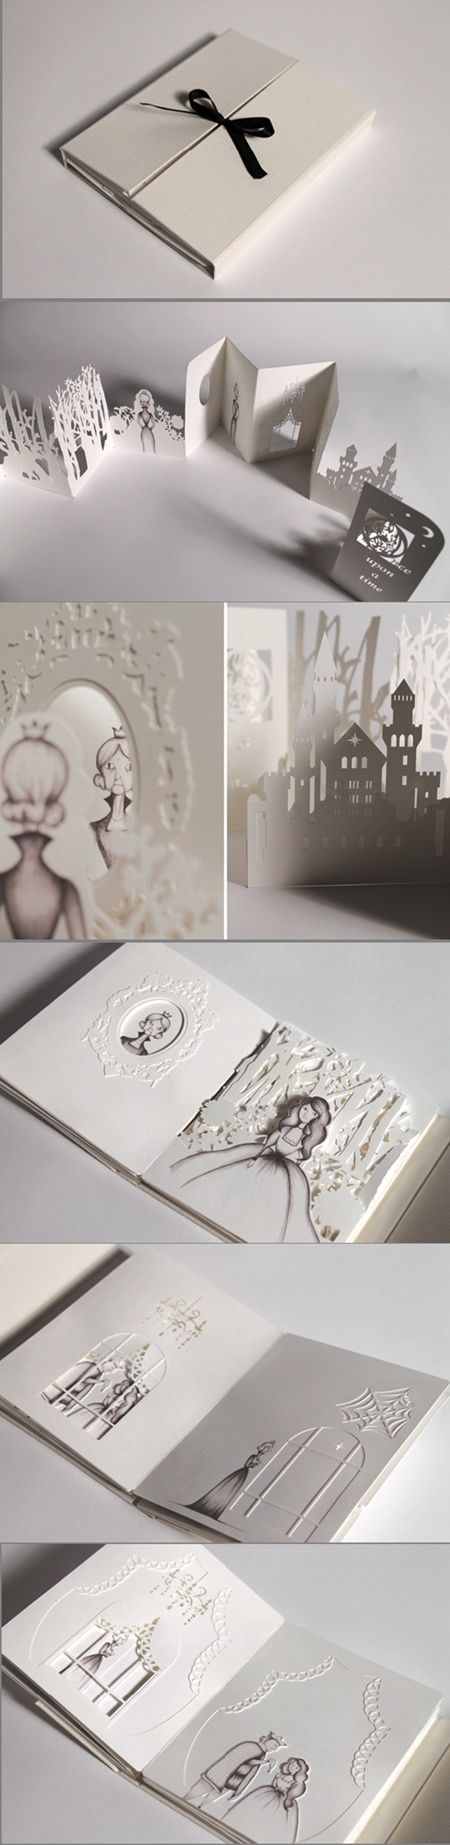 Hiroko Matshushita - a step up on the pop up book! #Paper Art #Paper Crafts